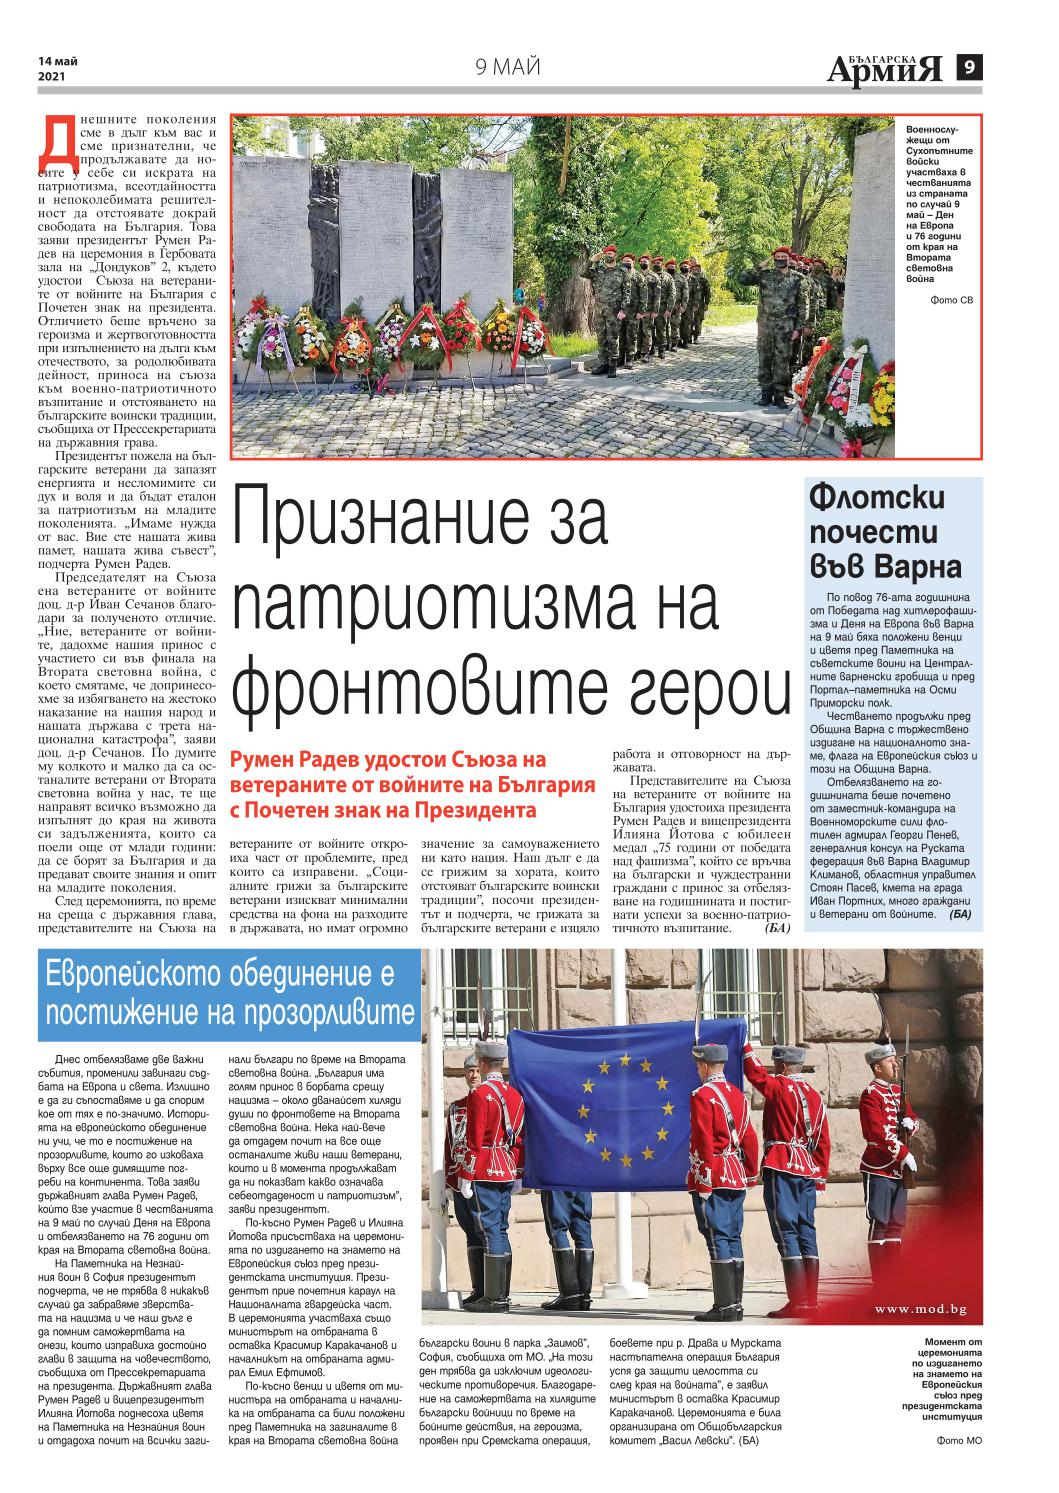 https://armymedia.bg/wp-content/uploads/2021/05/09.page1_-1.jpg